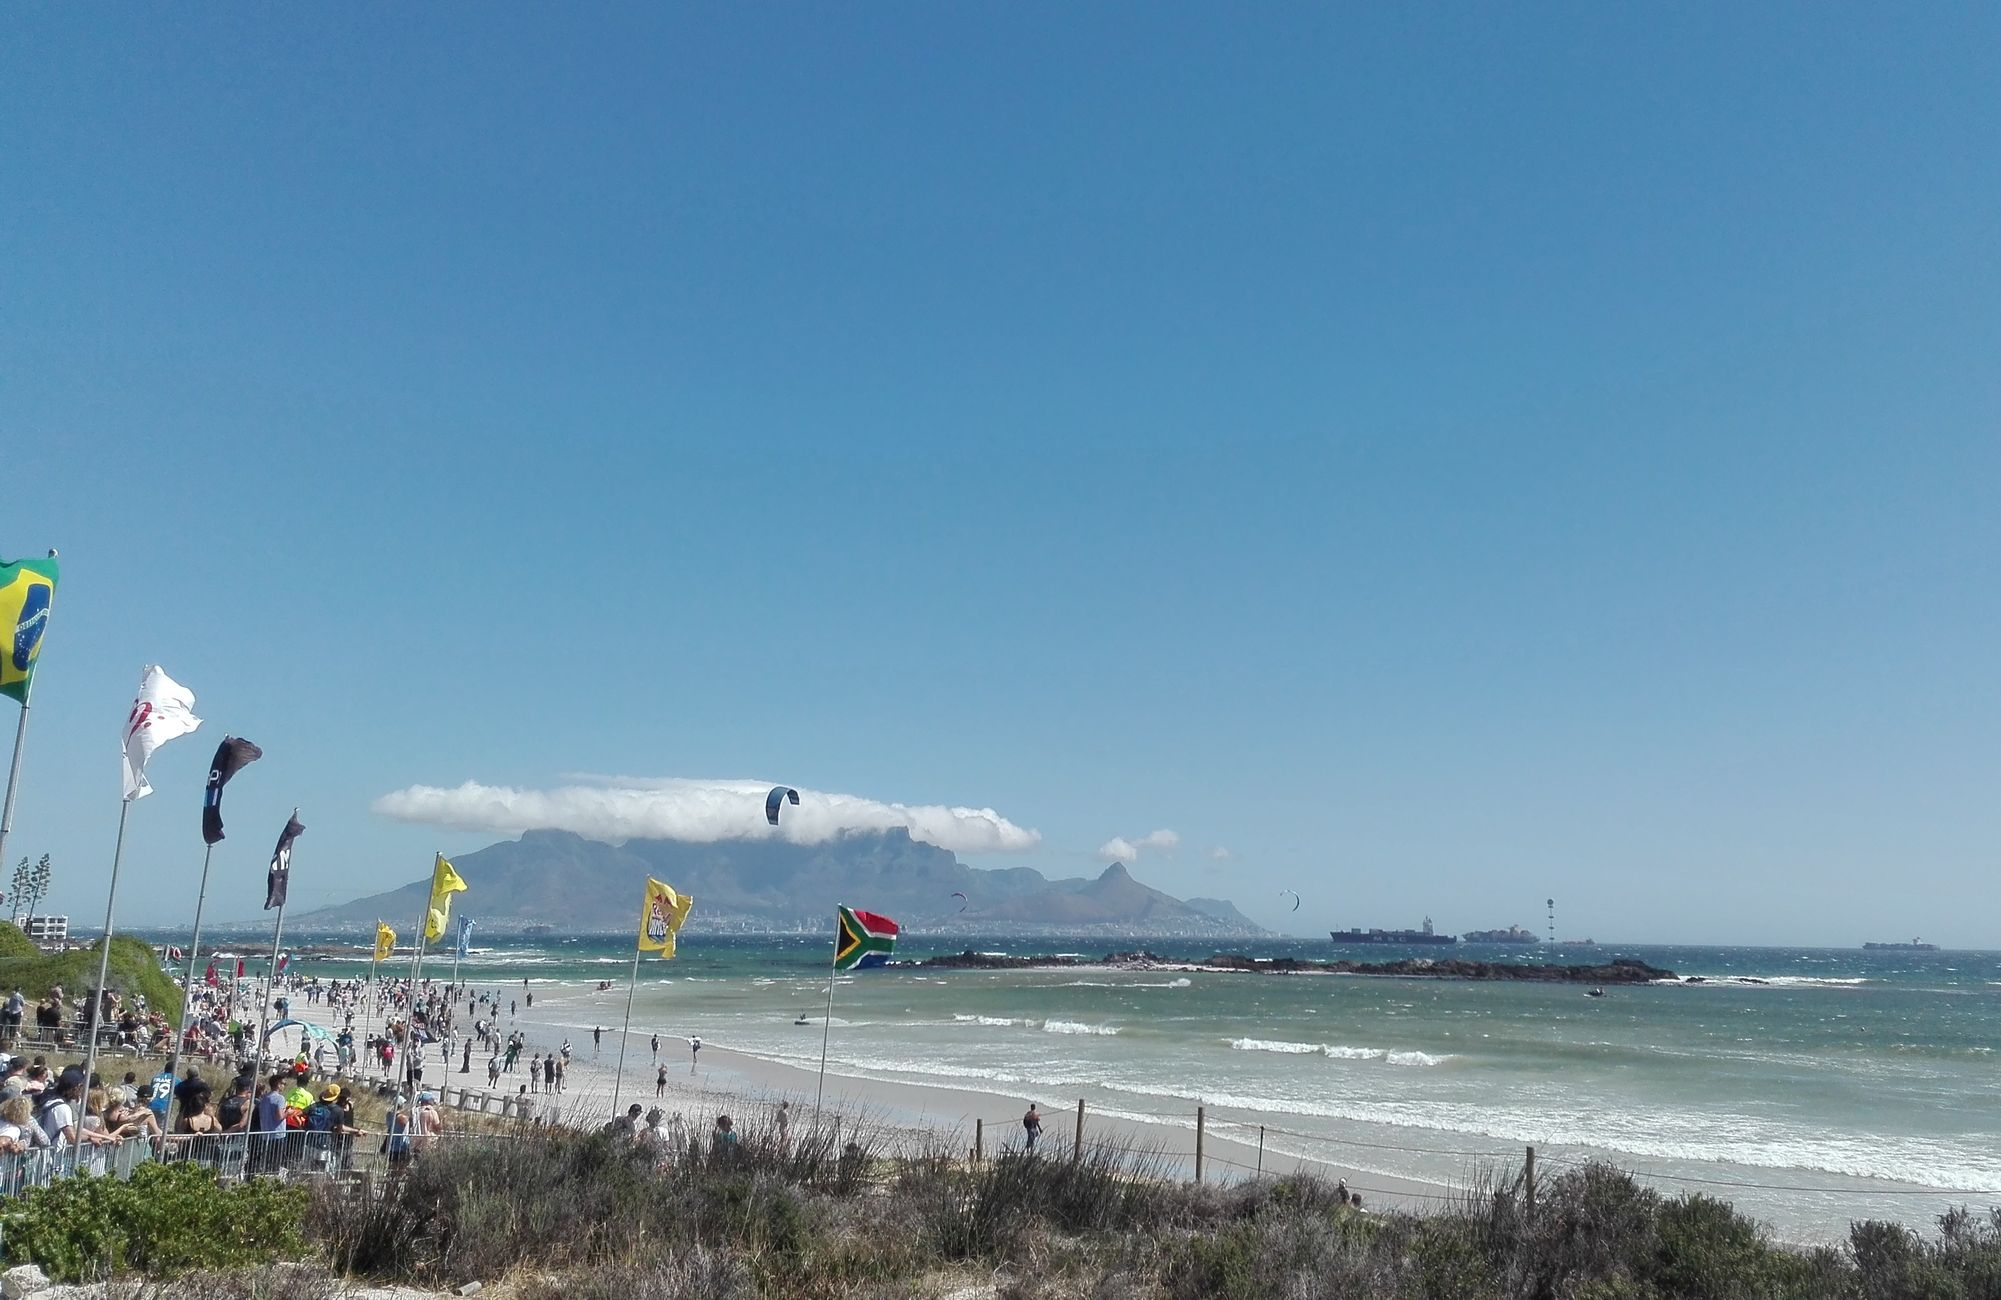 Big Bay kitesurfing competition